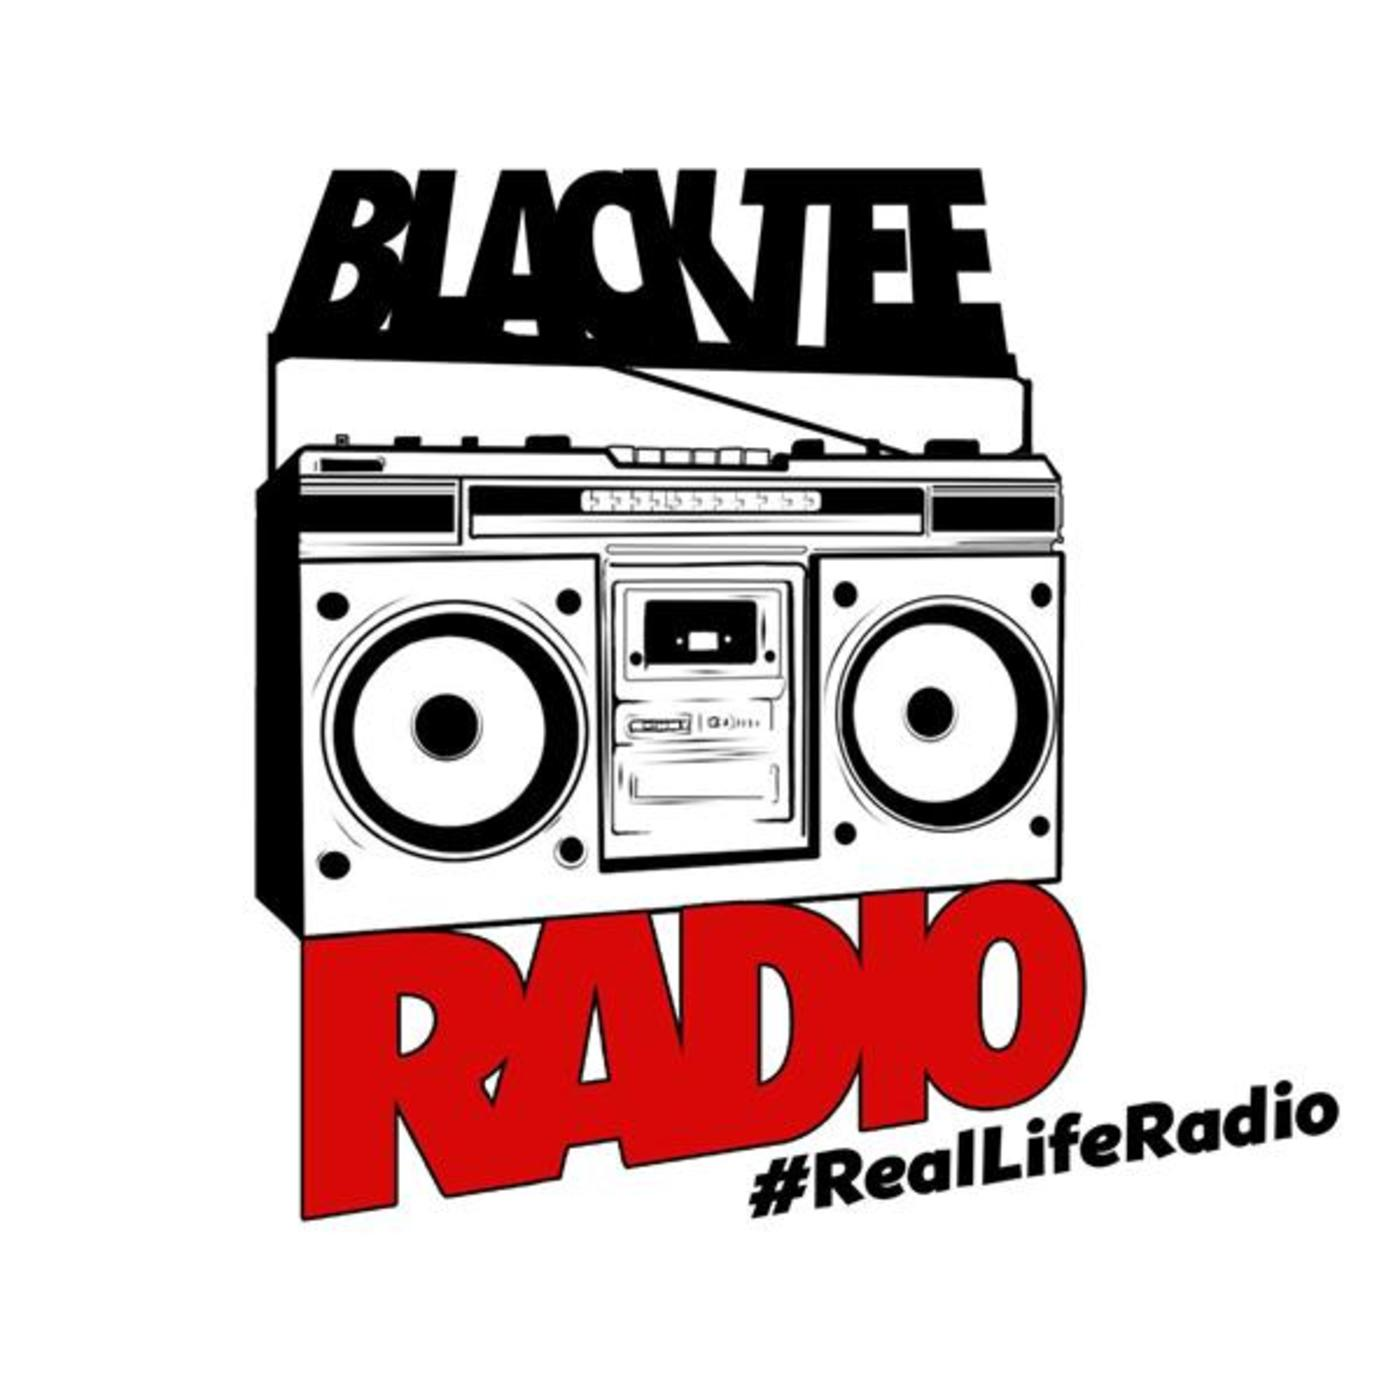 Black Tee Radio: Real Life Radio